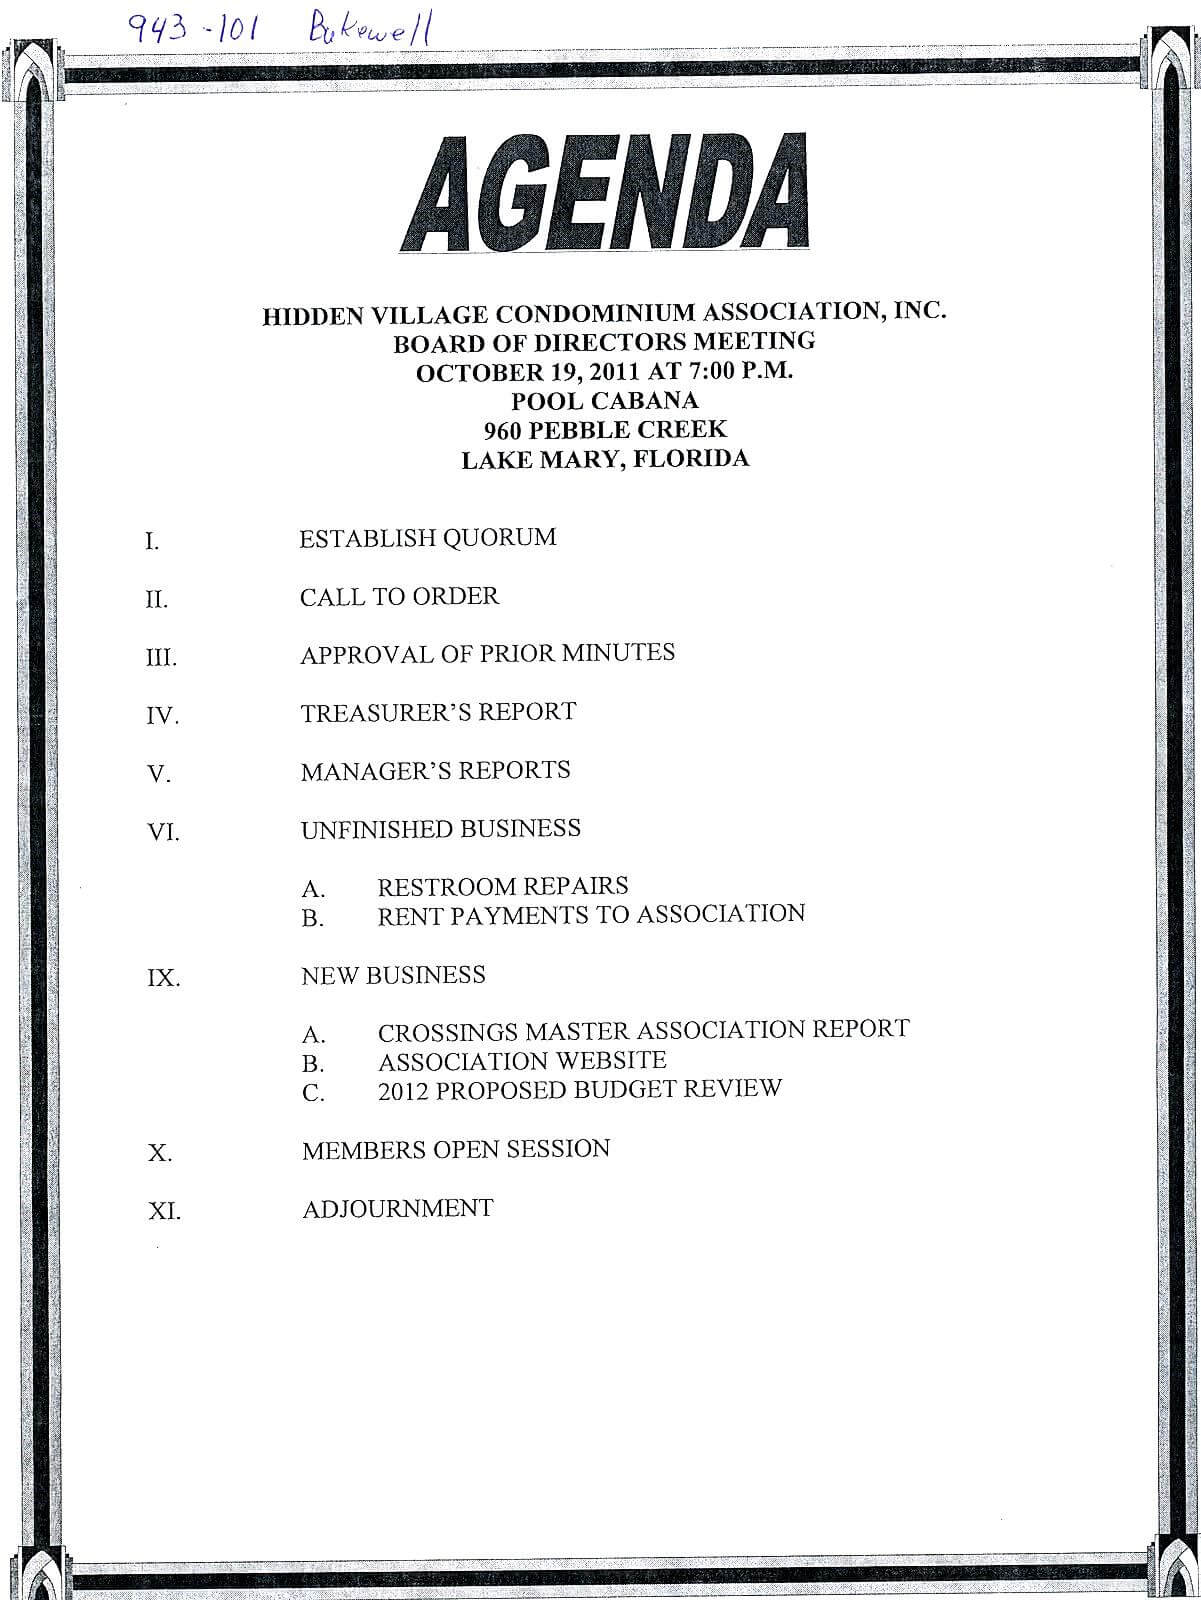 Agenda Template For Word Antabuse - Cover Letter within Agenda Template Word 2010